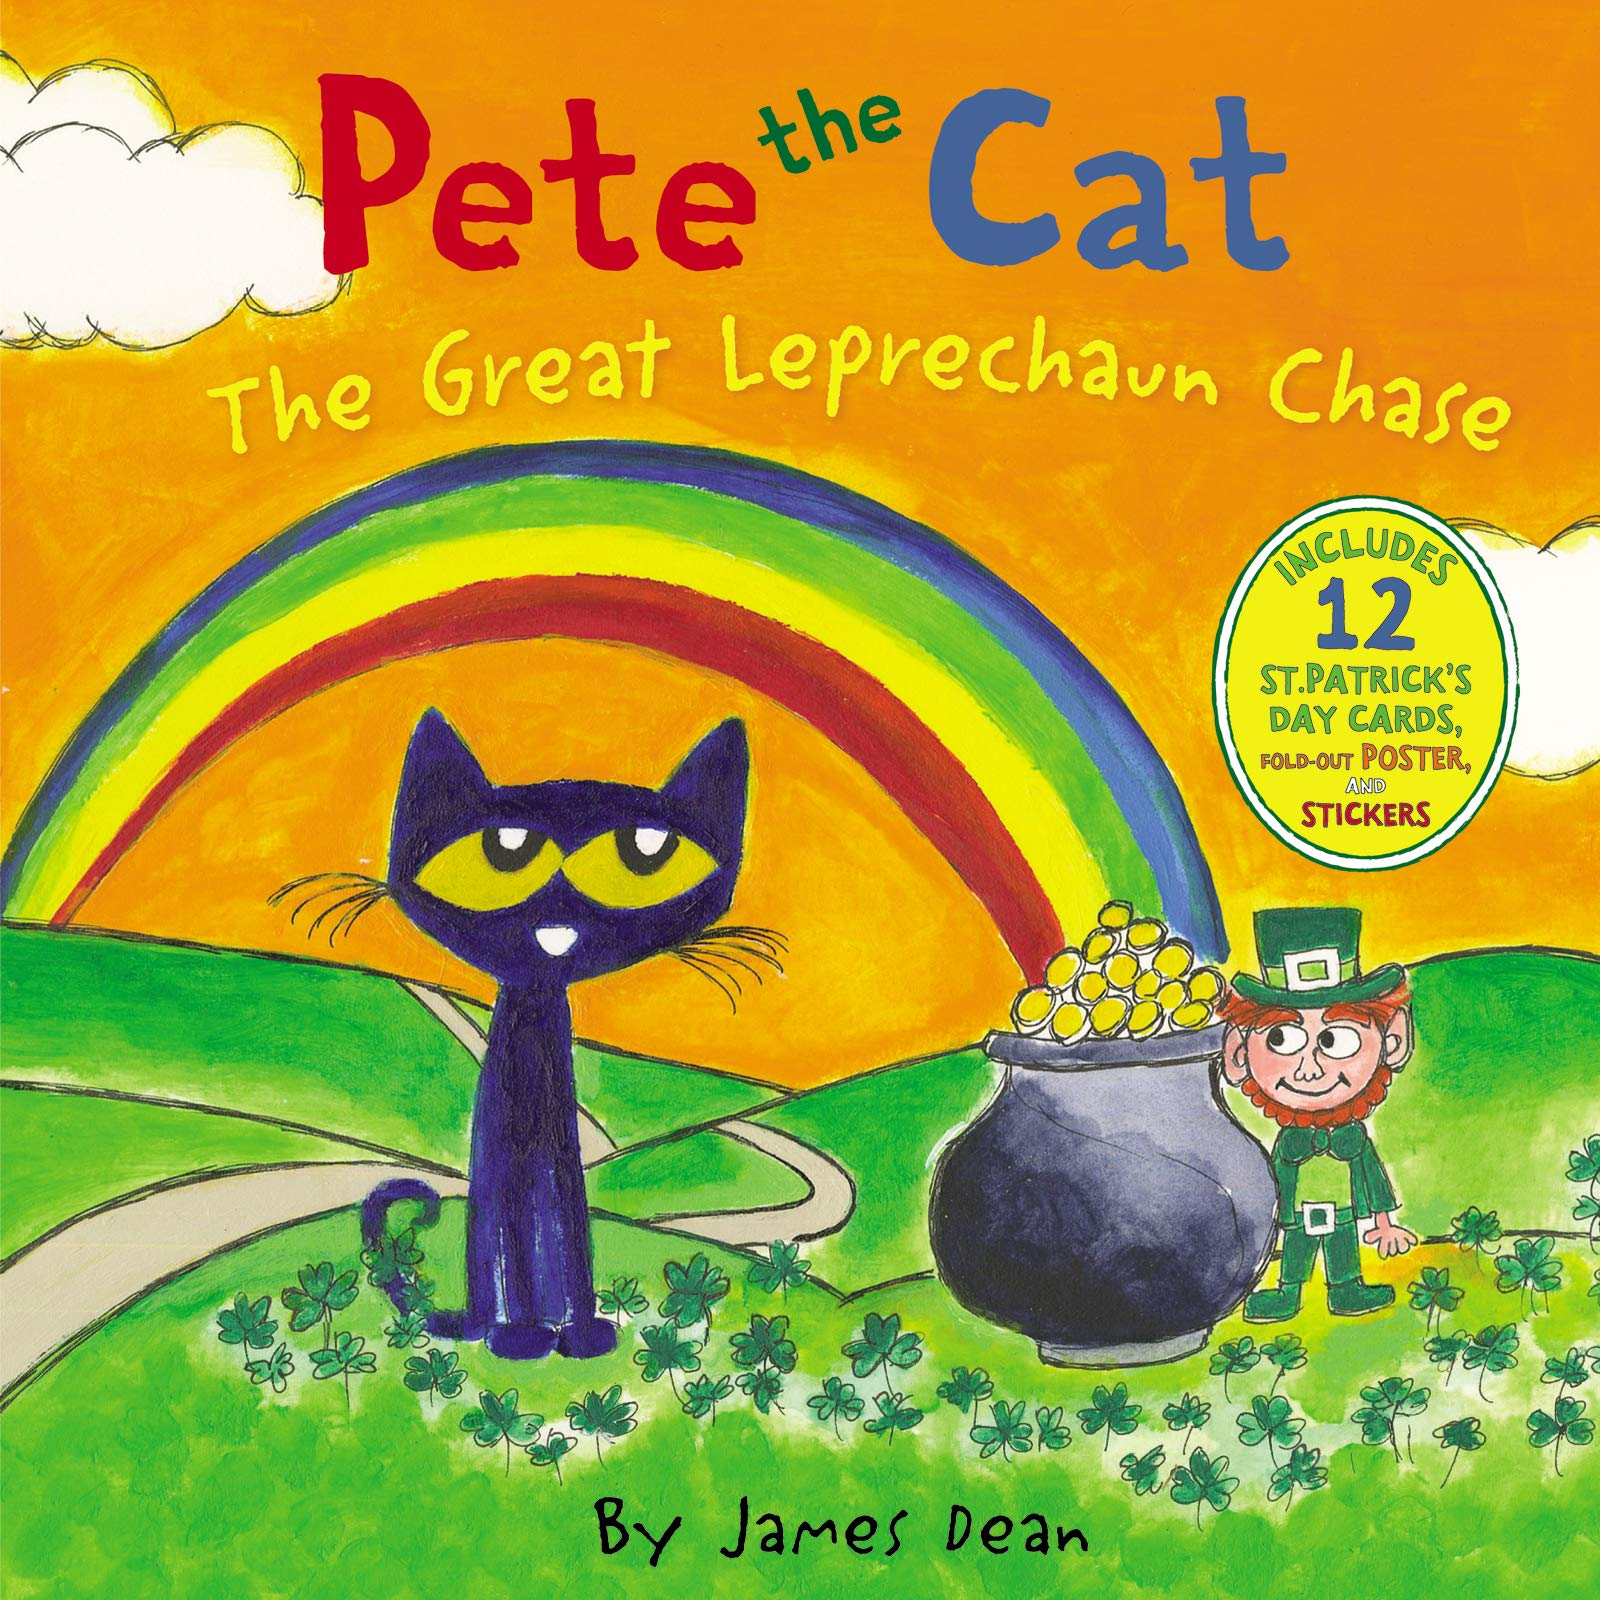 dda18be4e1c71 Pete the Cat: The Great Leprechaun Chase: Includes 12 St. Patrick's Day  Cards, Fold-Out Poster, and Stickers!: James Dean: 9780062404503:  Amazon.com: Books